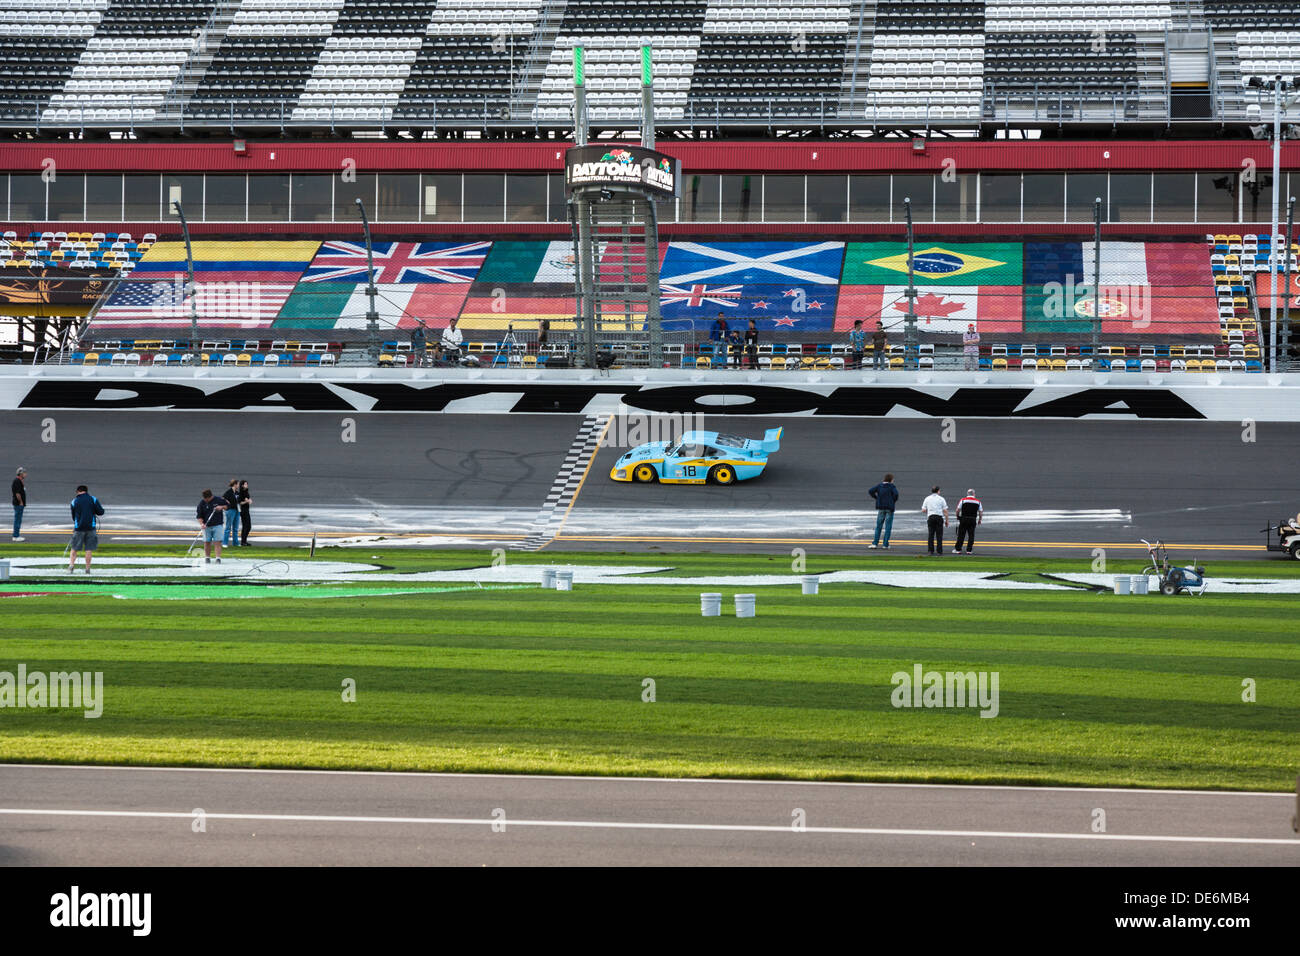 Preparation of track for racing at Daytona International Speedway during the 2012 Rolex 24 at Daytona, Florida - Stock Image